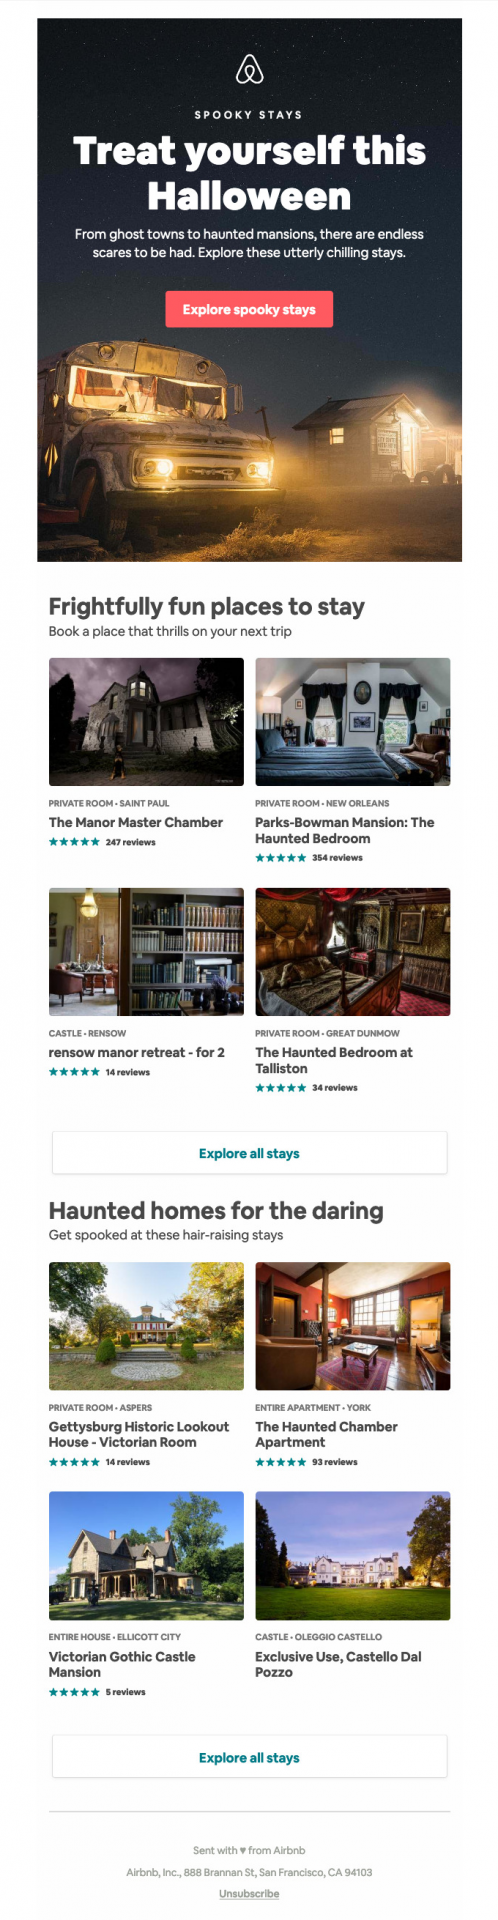 airbnb highlights haunted houses that halloween lovers can stay in to get in the spooky spirit